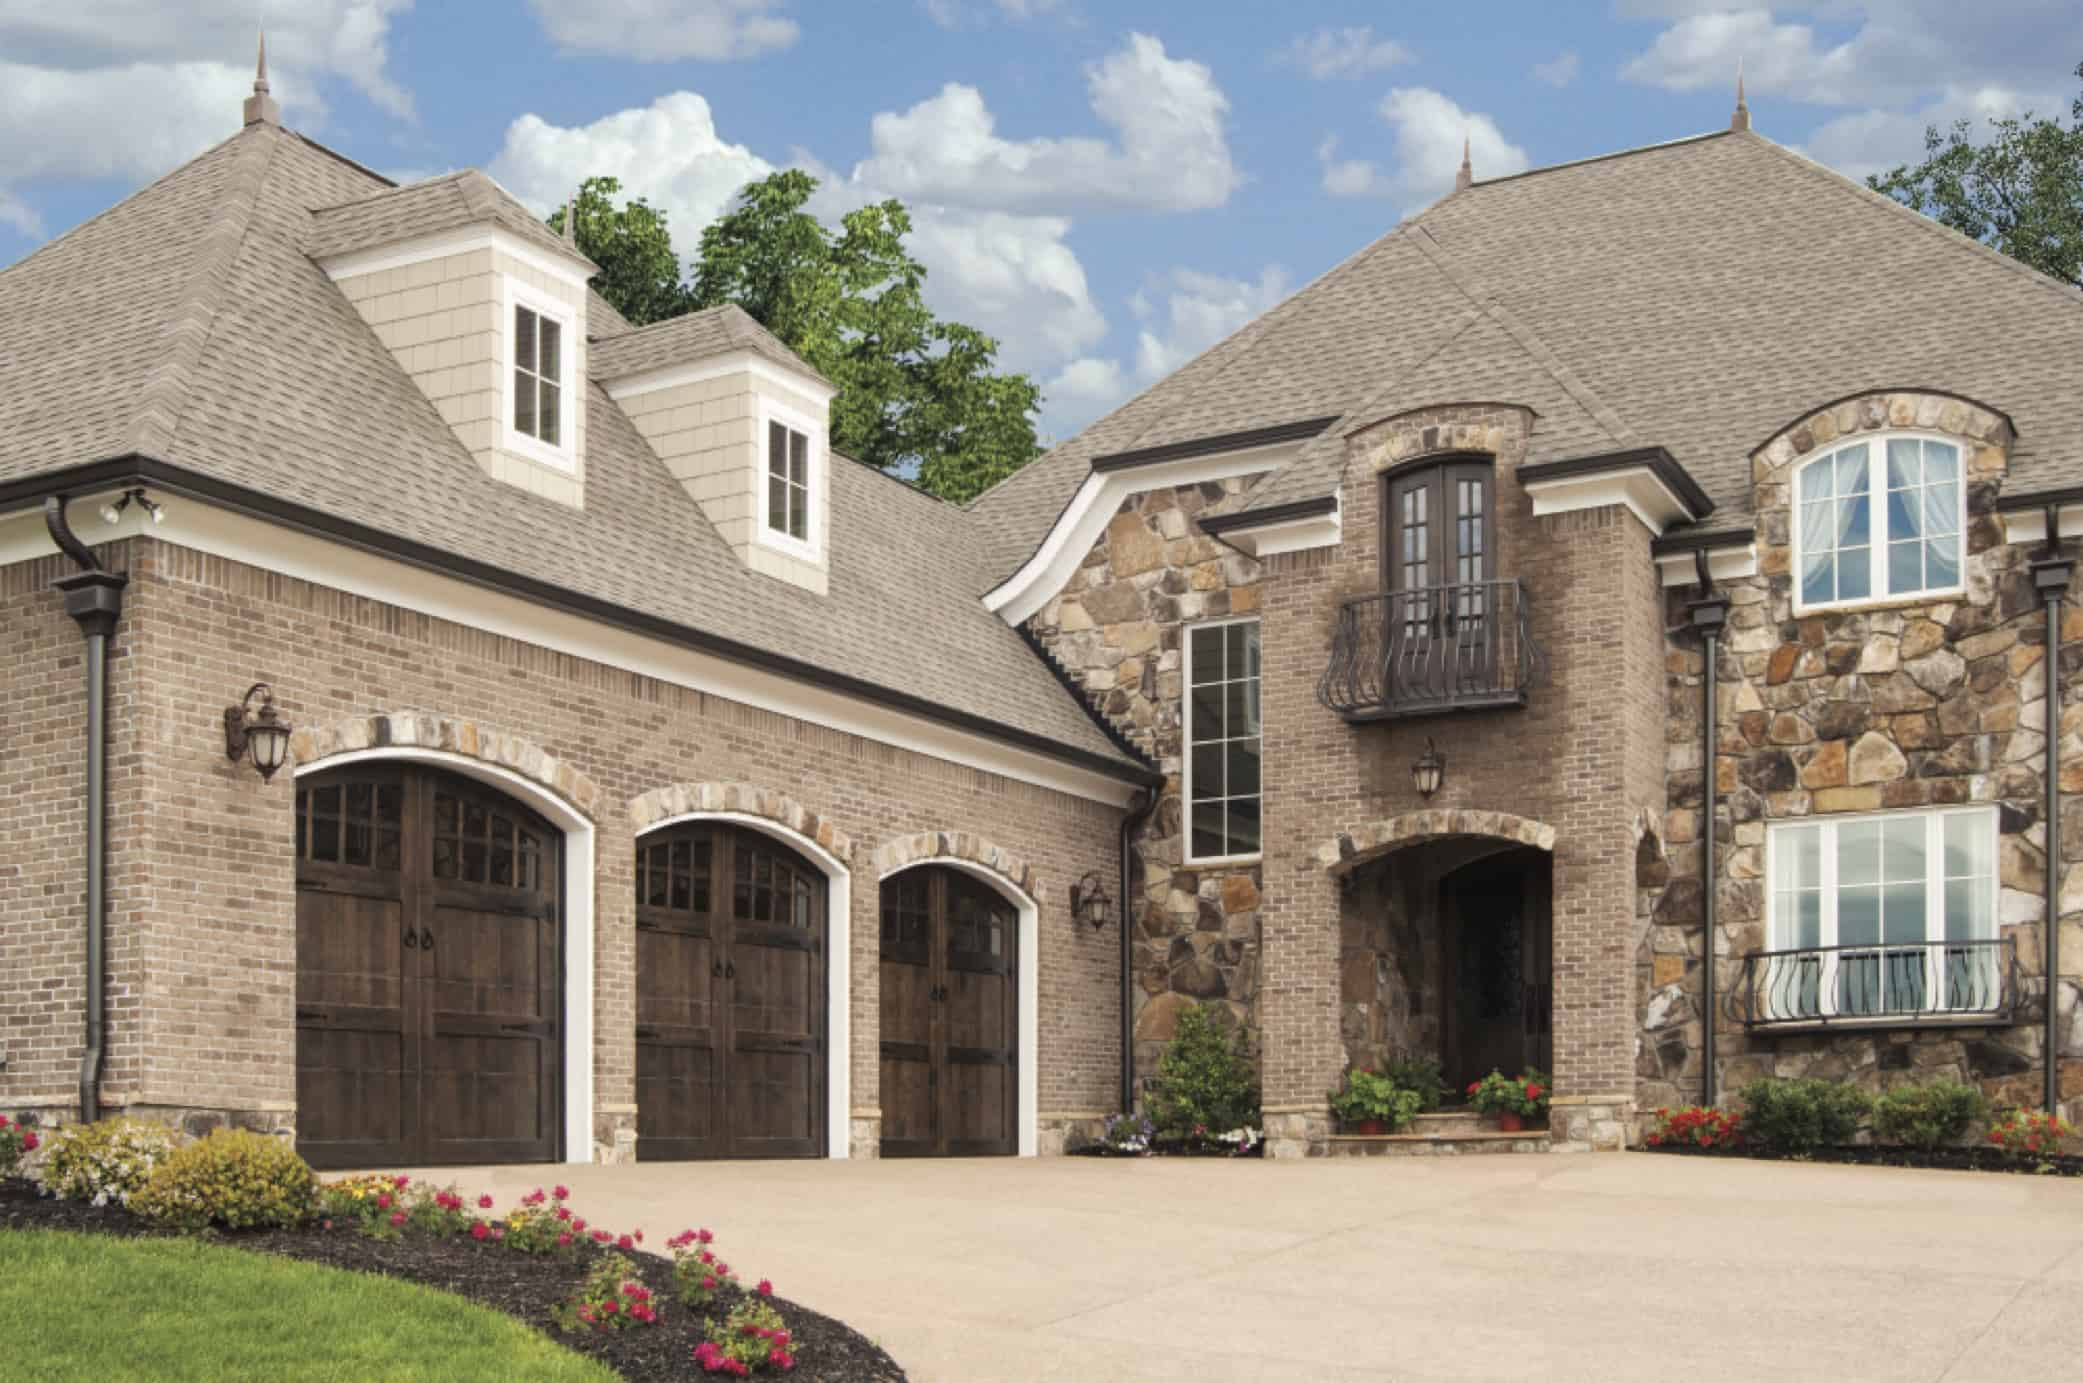 1383 #41638A  House Style Garage Doors By Wayne Dalton Cressy Door & Fireplace save image Wayne Dalton Residential Garage Doors 36972083